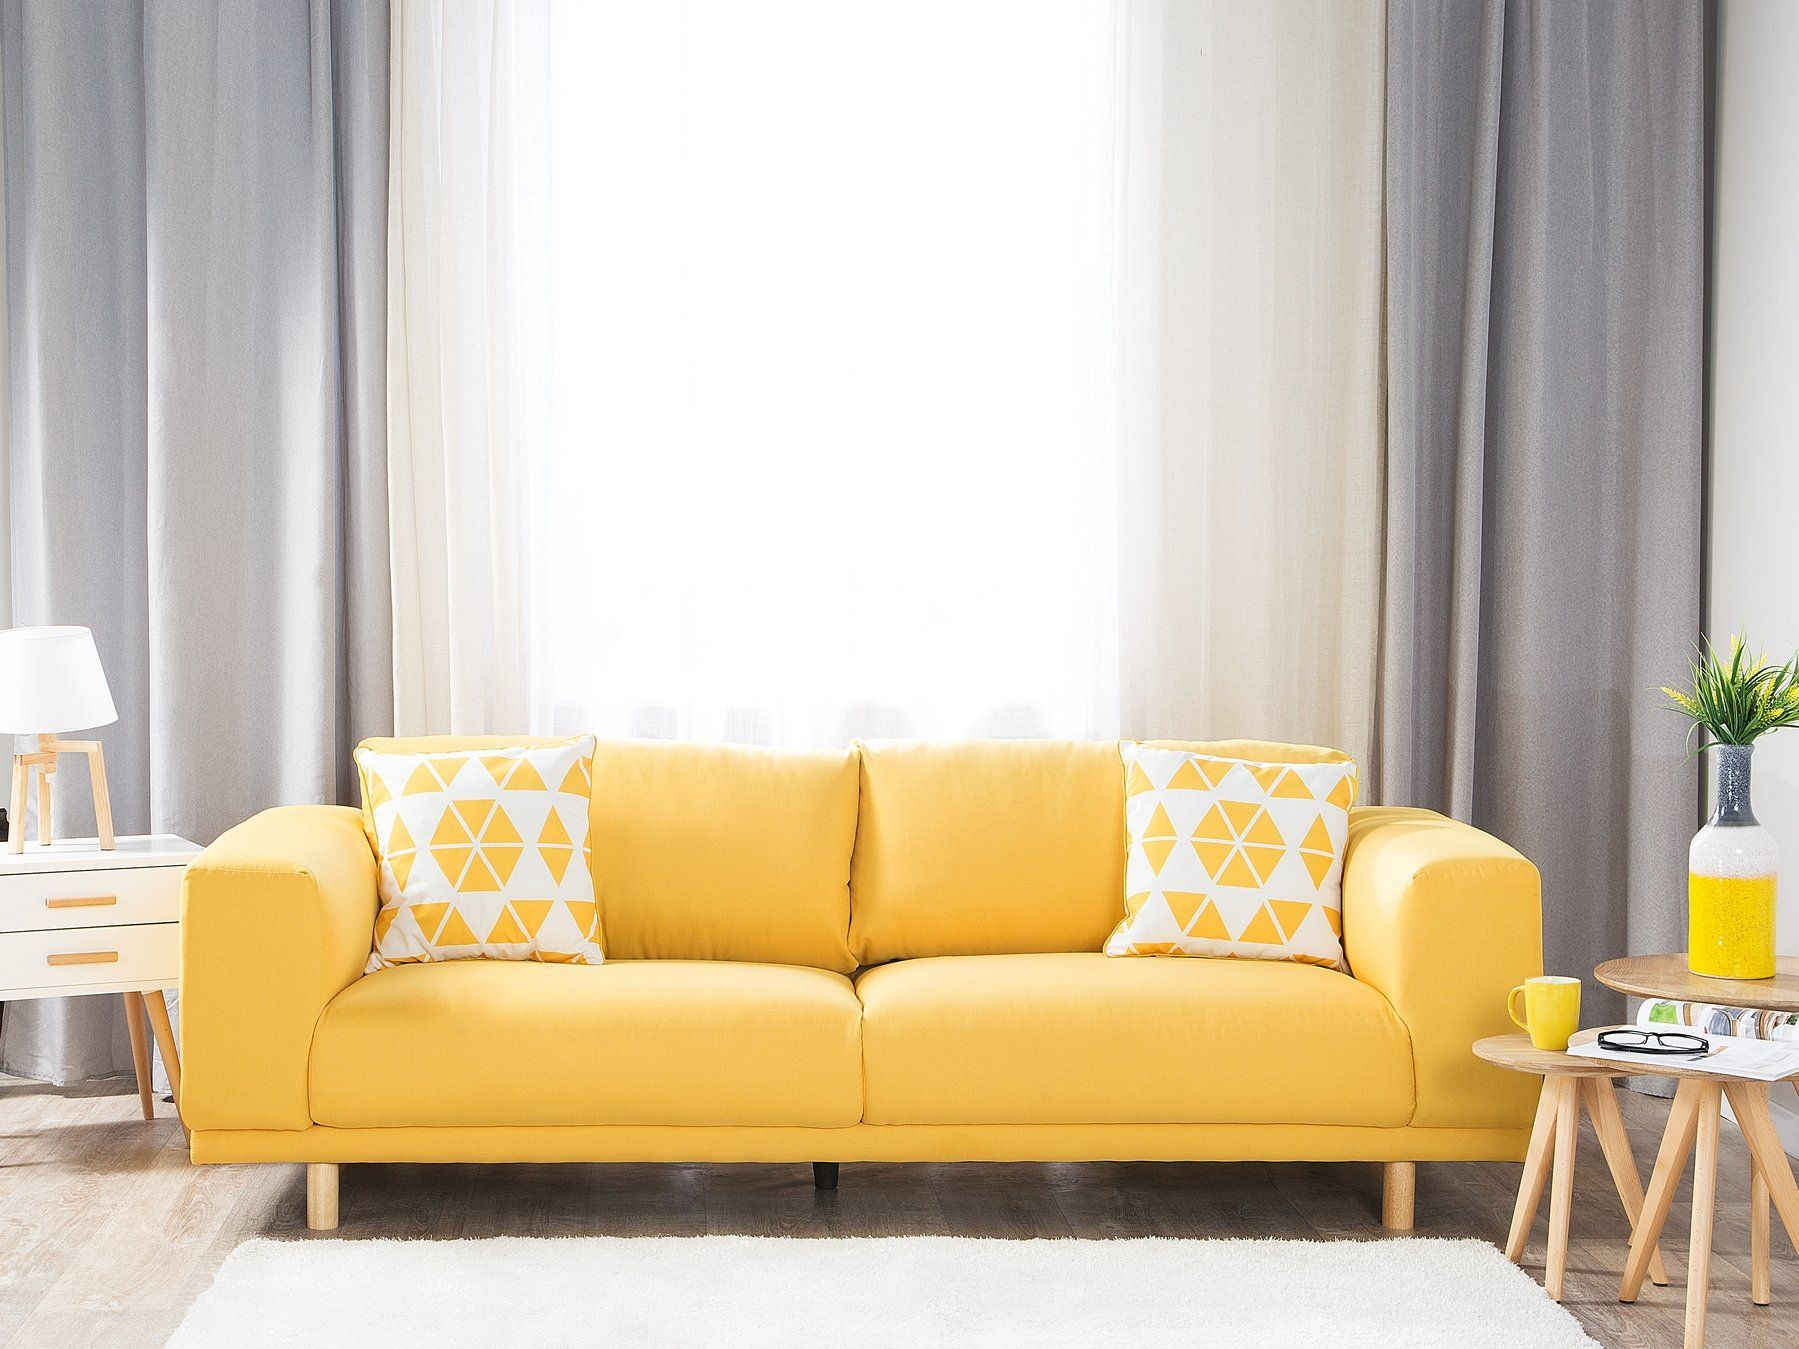 3 Seater Fabric Sofa Yellow NIVALA | Modern sofa living room, Living room  furniture collections, Fabric sofa